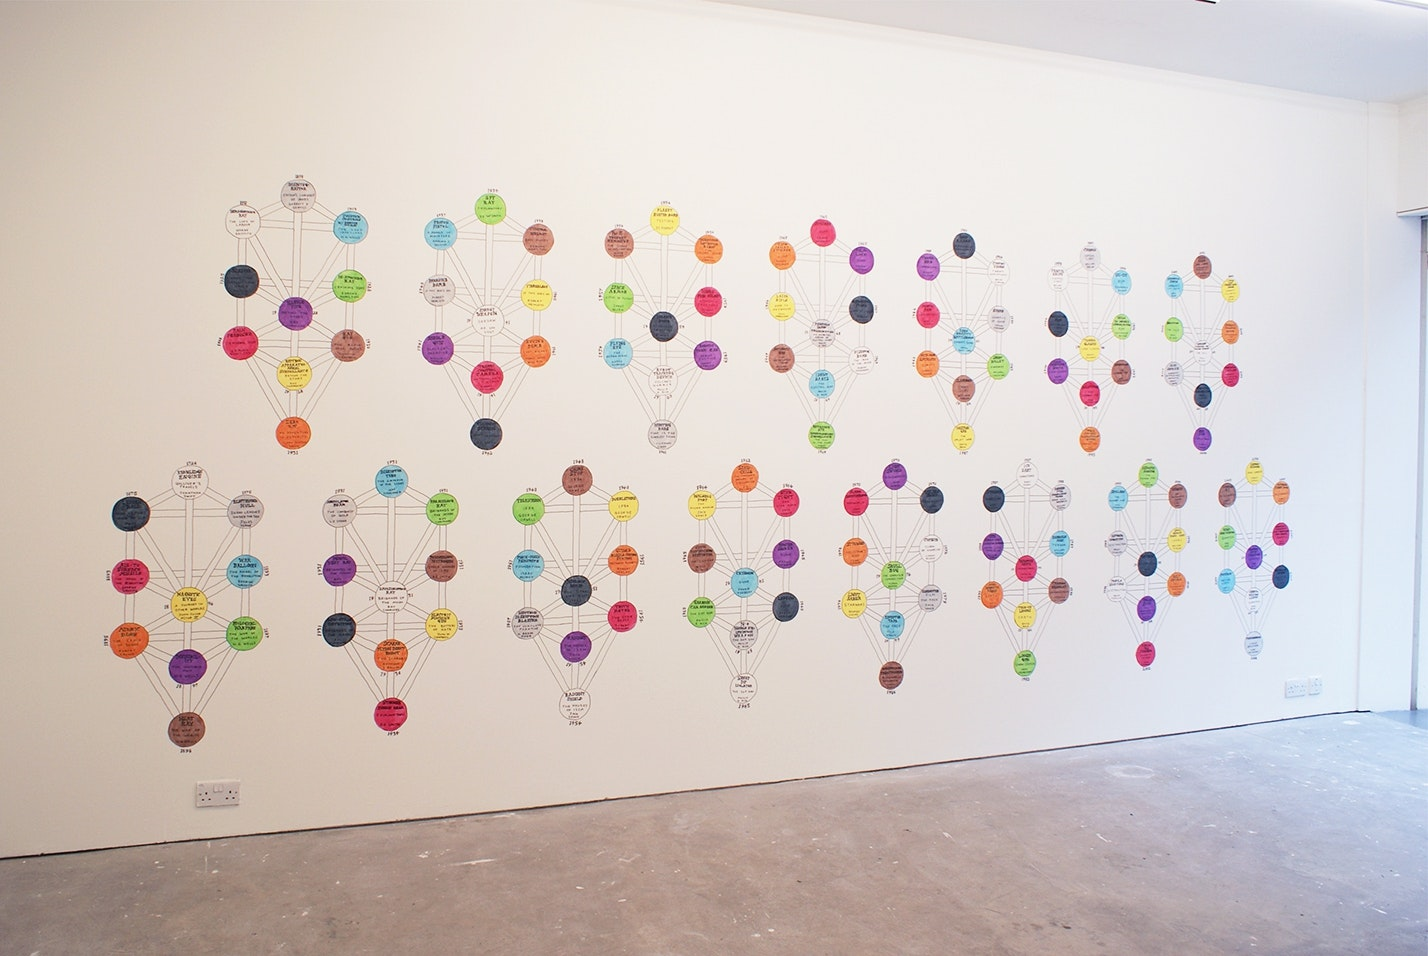 Suzanne Treister, *A Timeline of Science Fiction Inventions: Weapons, Warfare and Security*, wall drawing, 2010.